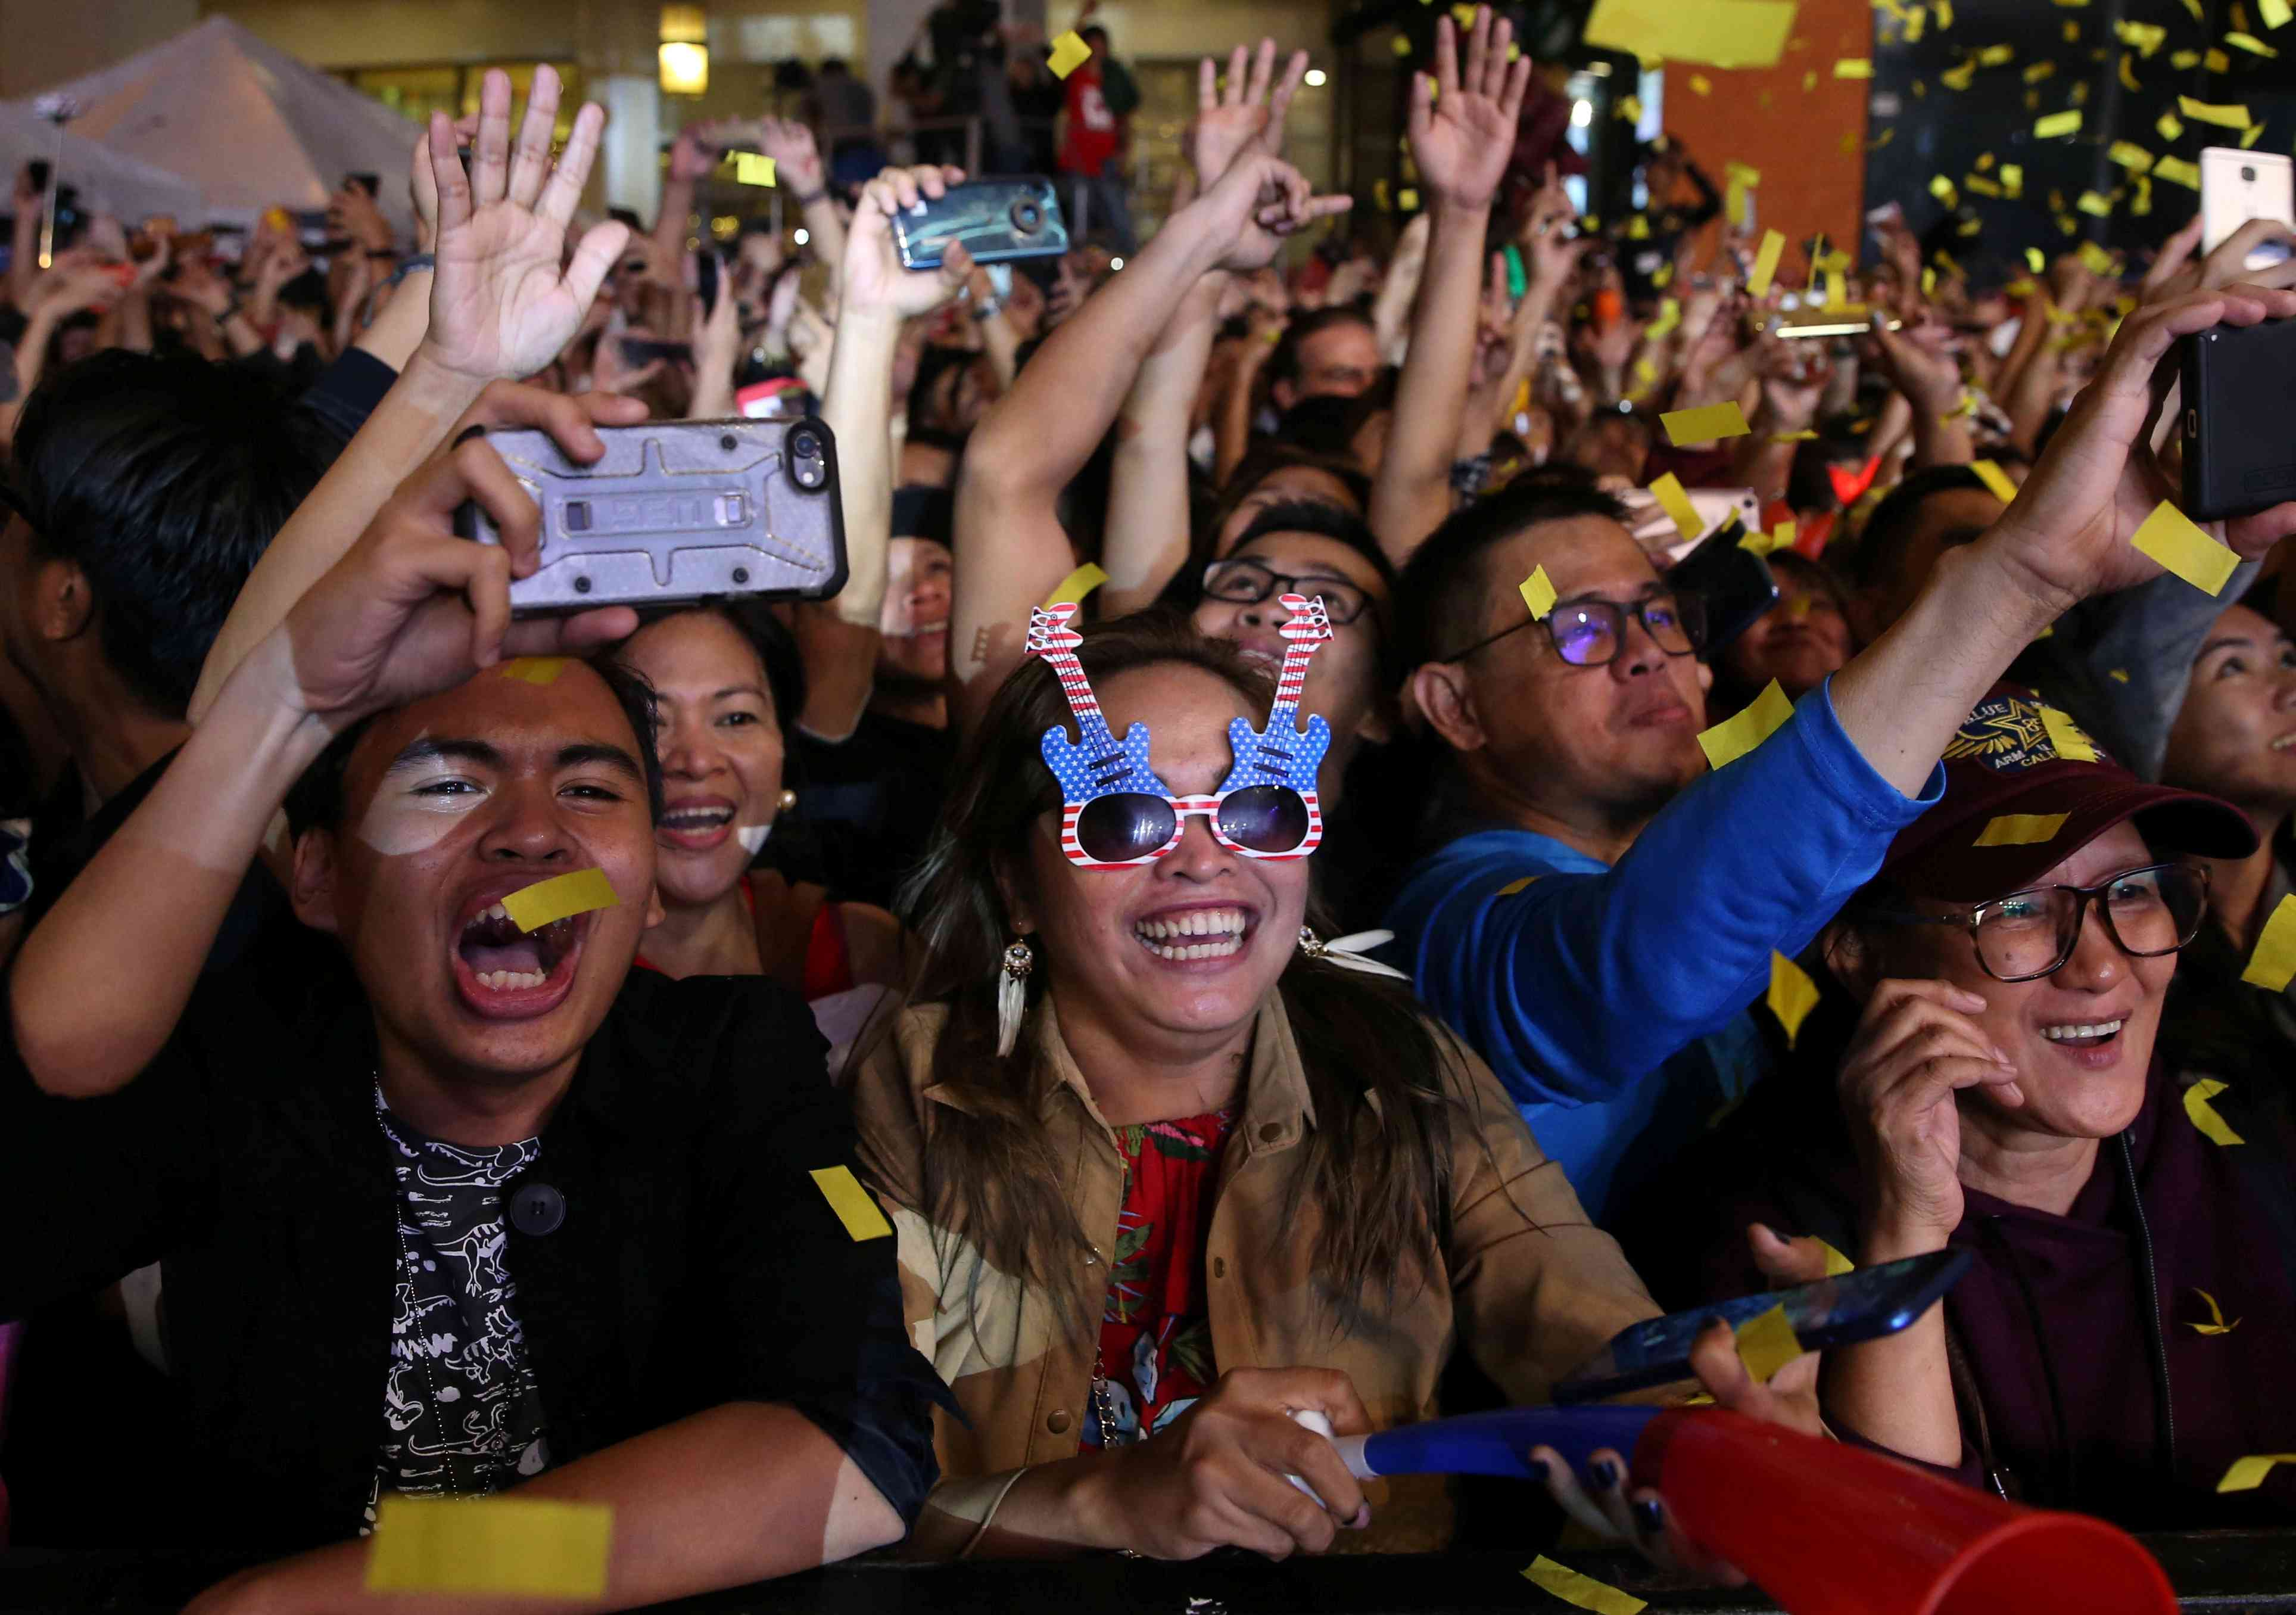 Philippines: Revellers celebrate at a New Year's Eve party in Quezon City. (Eloisa Lopez/Reuters)